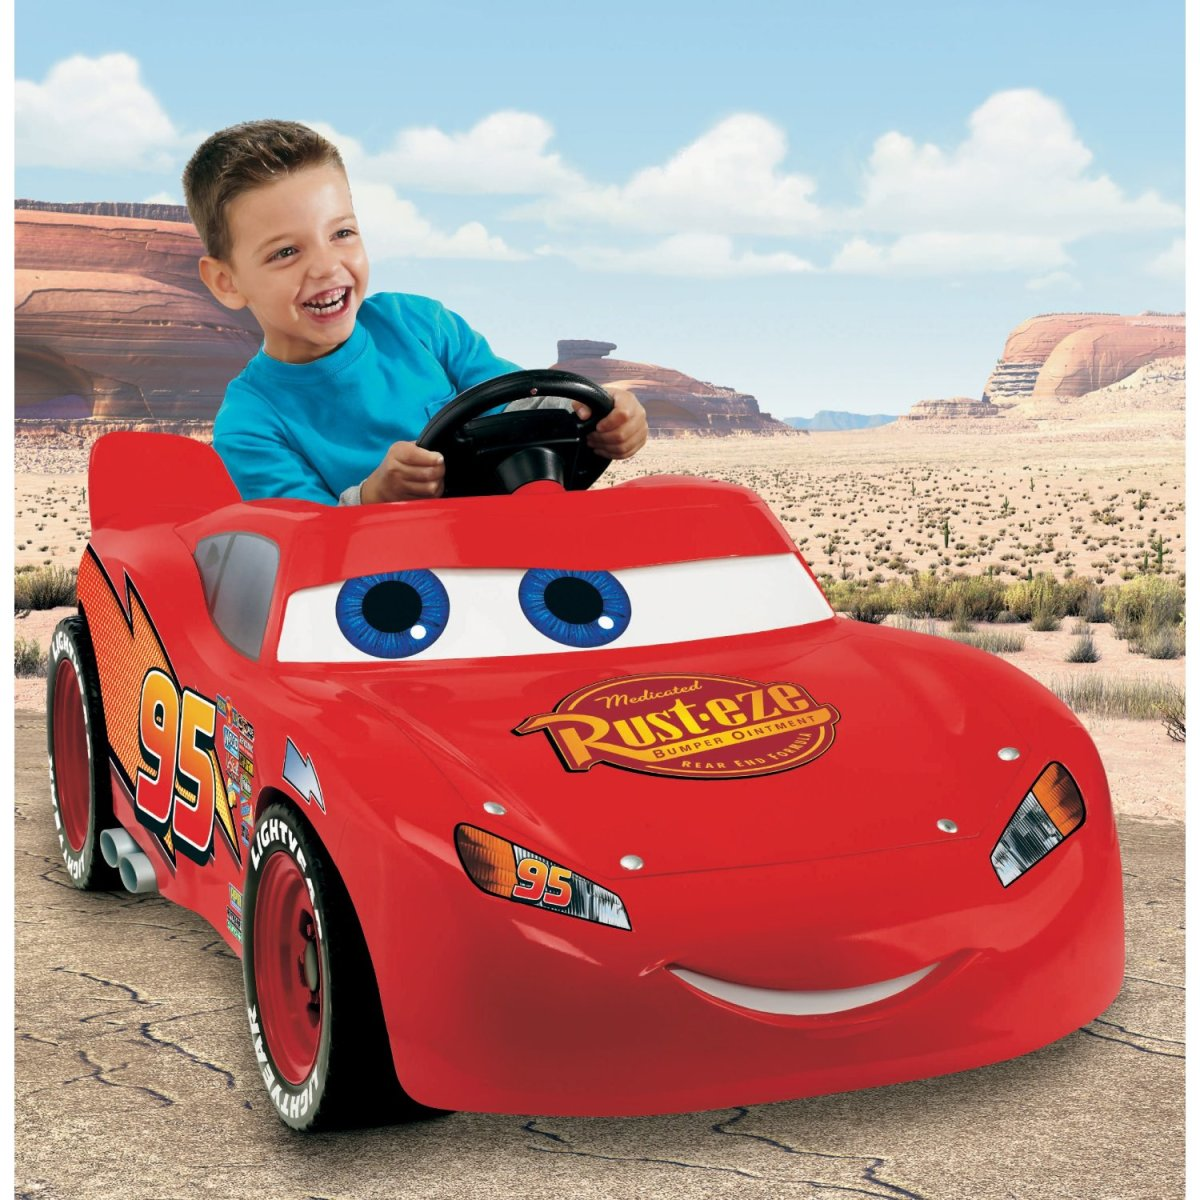 The Lightning McQueen Power Wheels is a fun ride on for kids between the ages of three to seven years of age. It can go about 2 and a half miles before needing to be recharged.